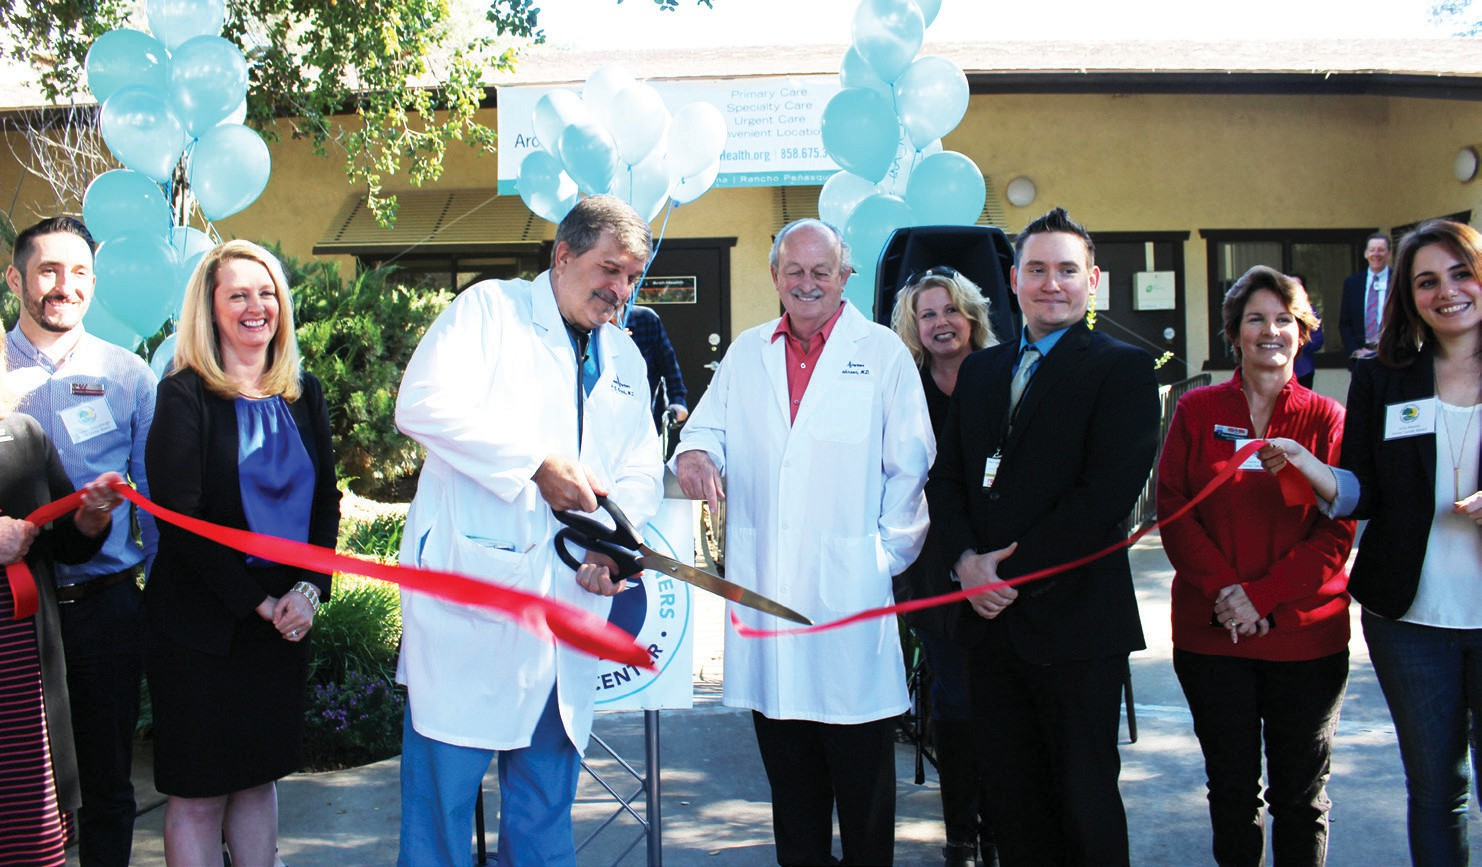 Arch Health CEO Deanna Kyrimis (second from left) watches while Dr. David Greb and Dr. Roy Johnson cut the ribbon to the new office. Shown with them are members of the Valley Center Chamber of Commerce, including (from left) Brandon Strausbaugh, Joshua Sibelius, Dianne Conaway and Julia Boulos. Photos by David Ross